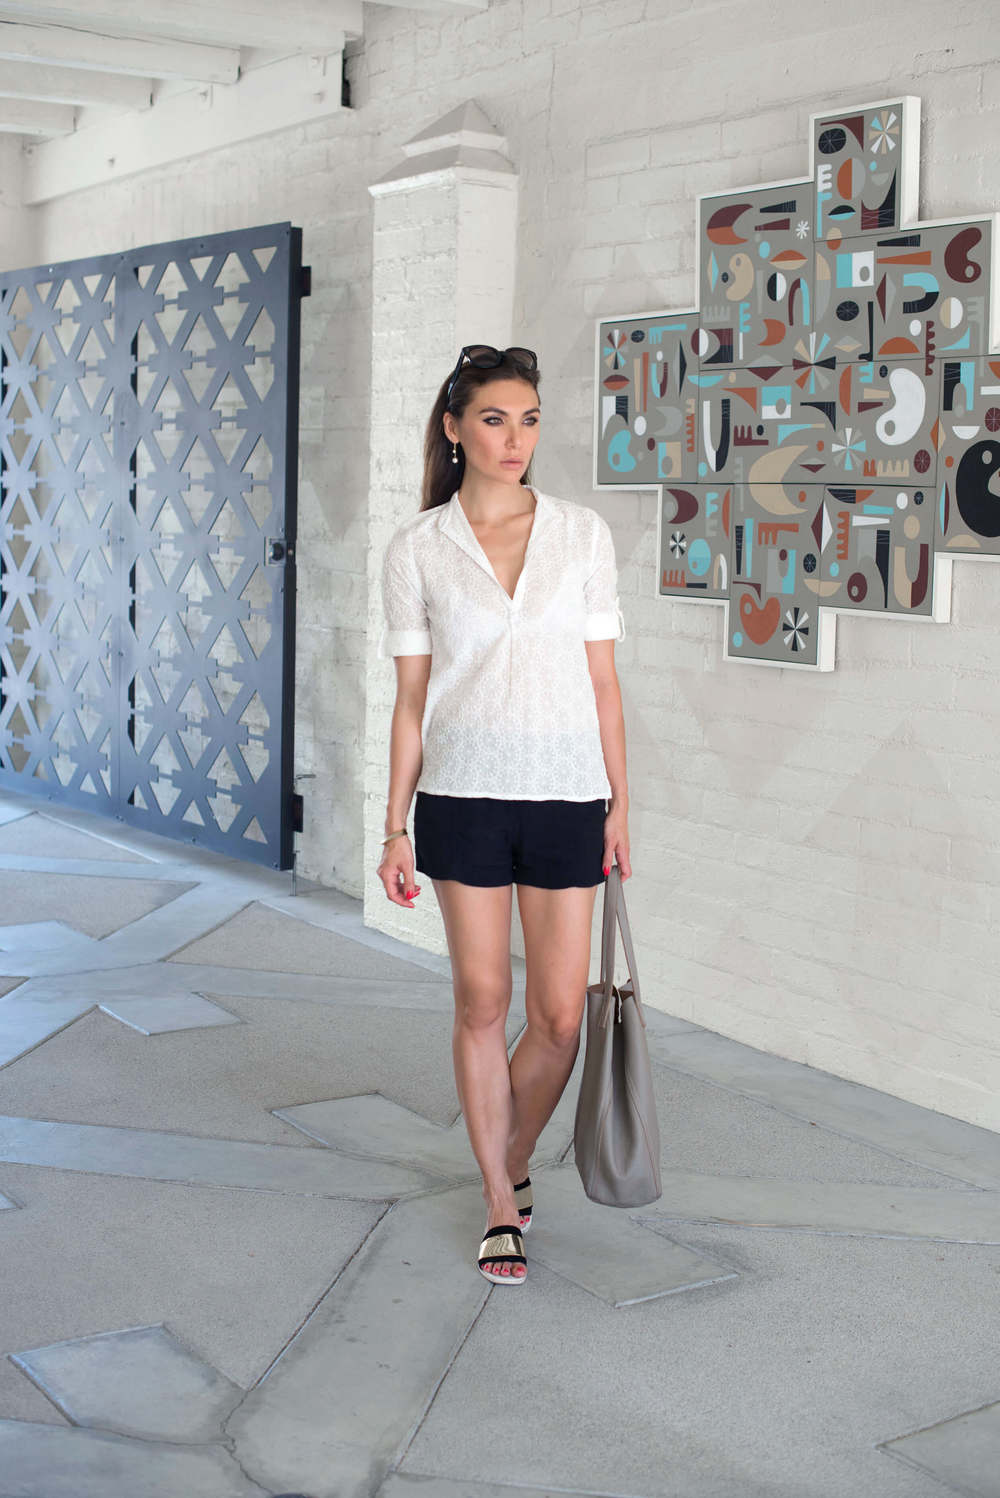 WEARING: Bell by Alicial Bell Popover Top (currently on sale), Helmut Lang Shorts, Zara Shoes (old, similar here), Cuyana Tote, Wanderlust + Co Double Drop Earrings, Ona Chan Dagger Bracelet, Céline Audrey Sunglasses